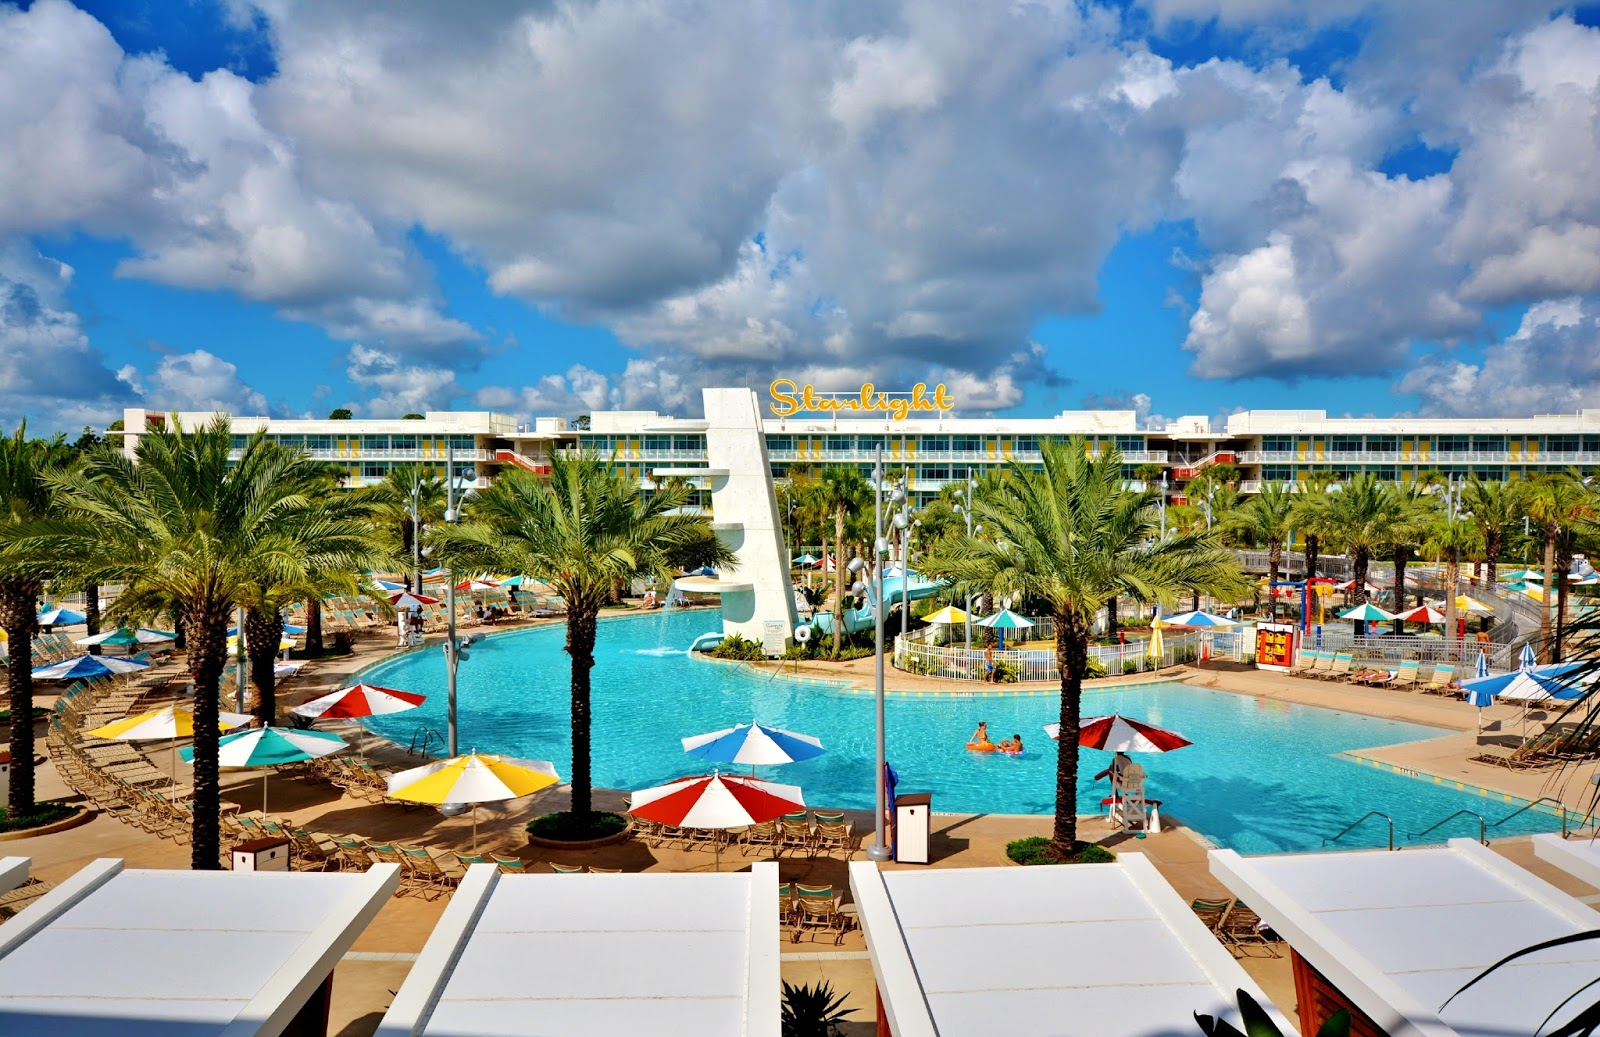 Life With 4 Boys Universal S Cabana Bay Beach Resort A Refreshing Blast From The Past Travel